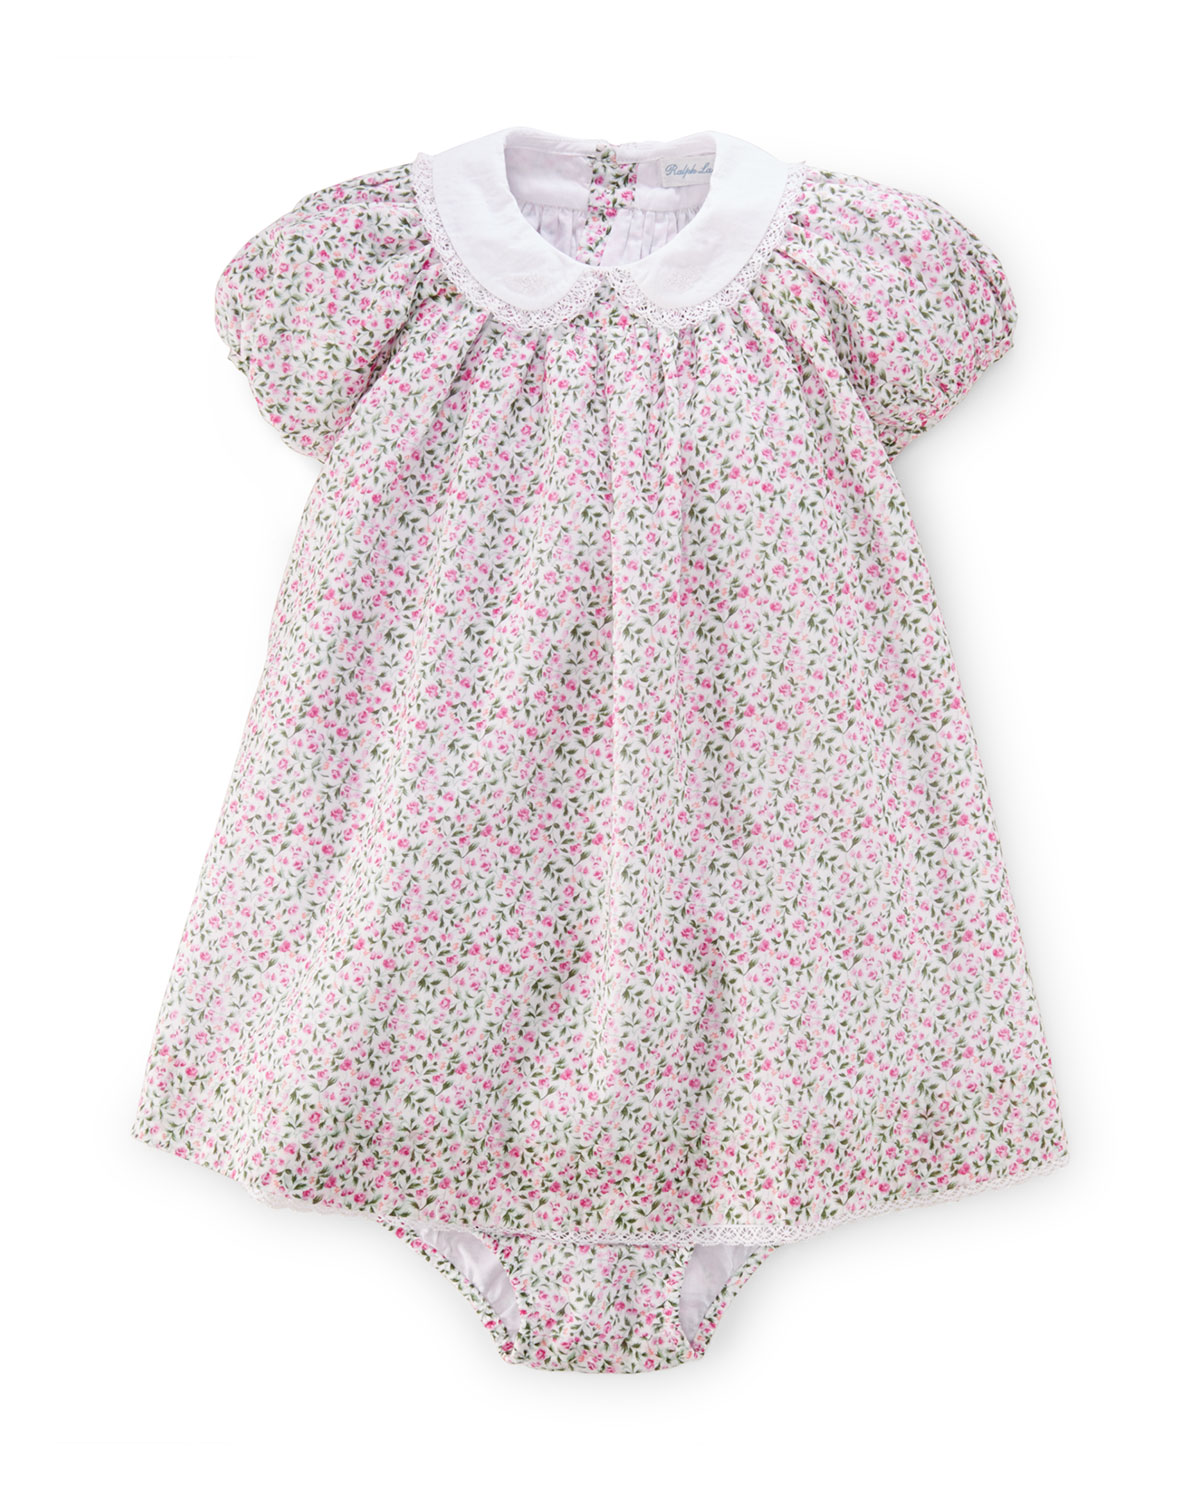 Batiste Floral Lace-Trim Dress w/ Bloomers, White/Multicolor, Size 9-24 Months, Infant Girl's, Size: 24 Months, White Multi - Ralph Lauren Childrenswear